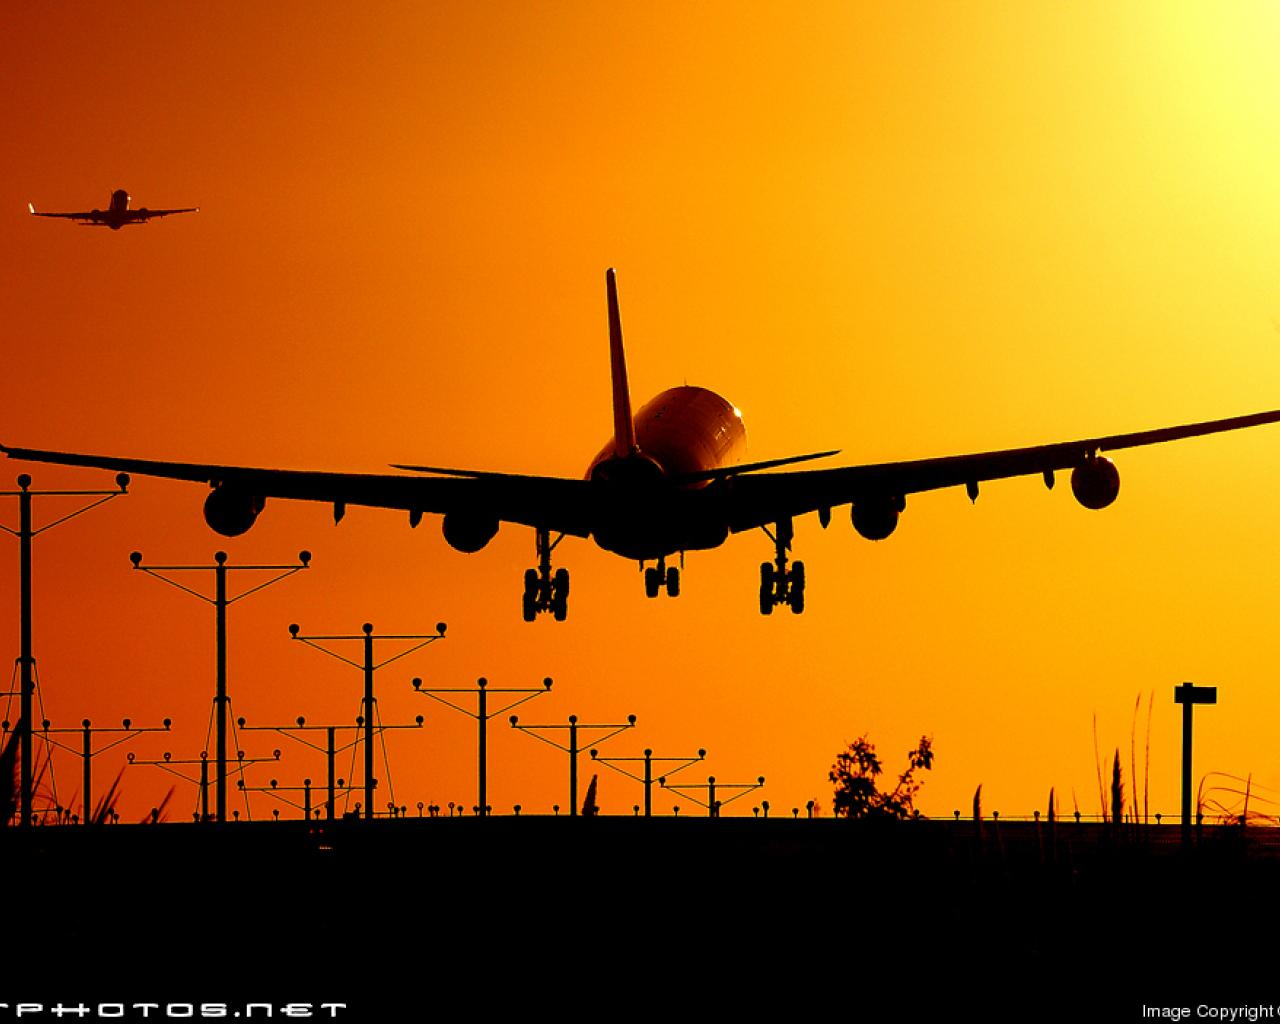 airliners sunset take off vehicles wallpaper HQ WALLPAPER   181435 1280x1024